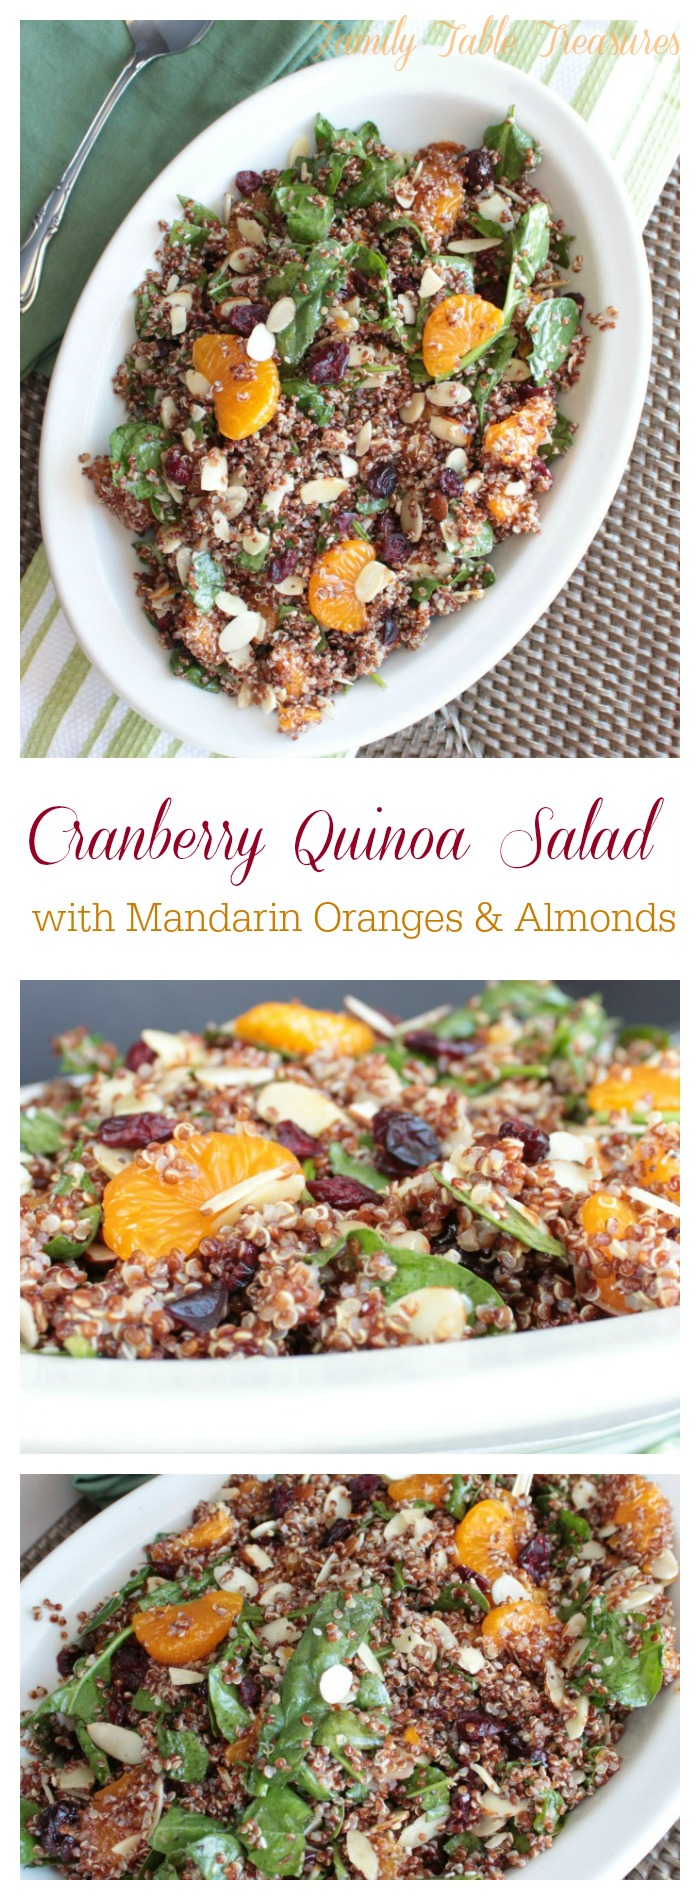 Cranberry Quinoa Salad {with Mandarin Oranges & Almonds}